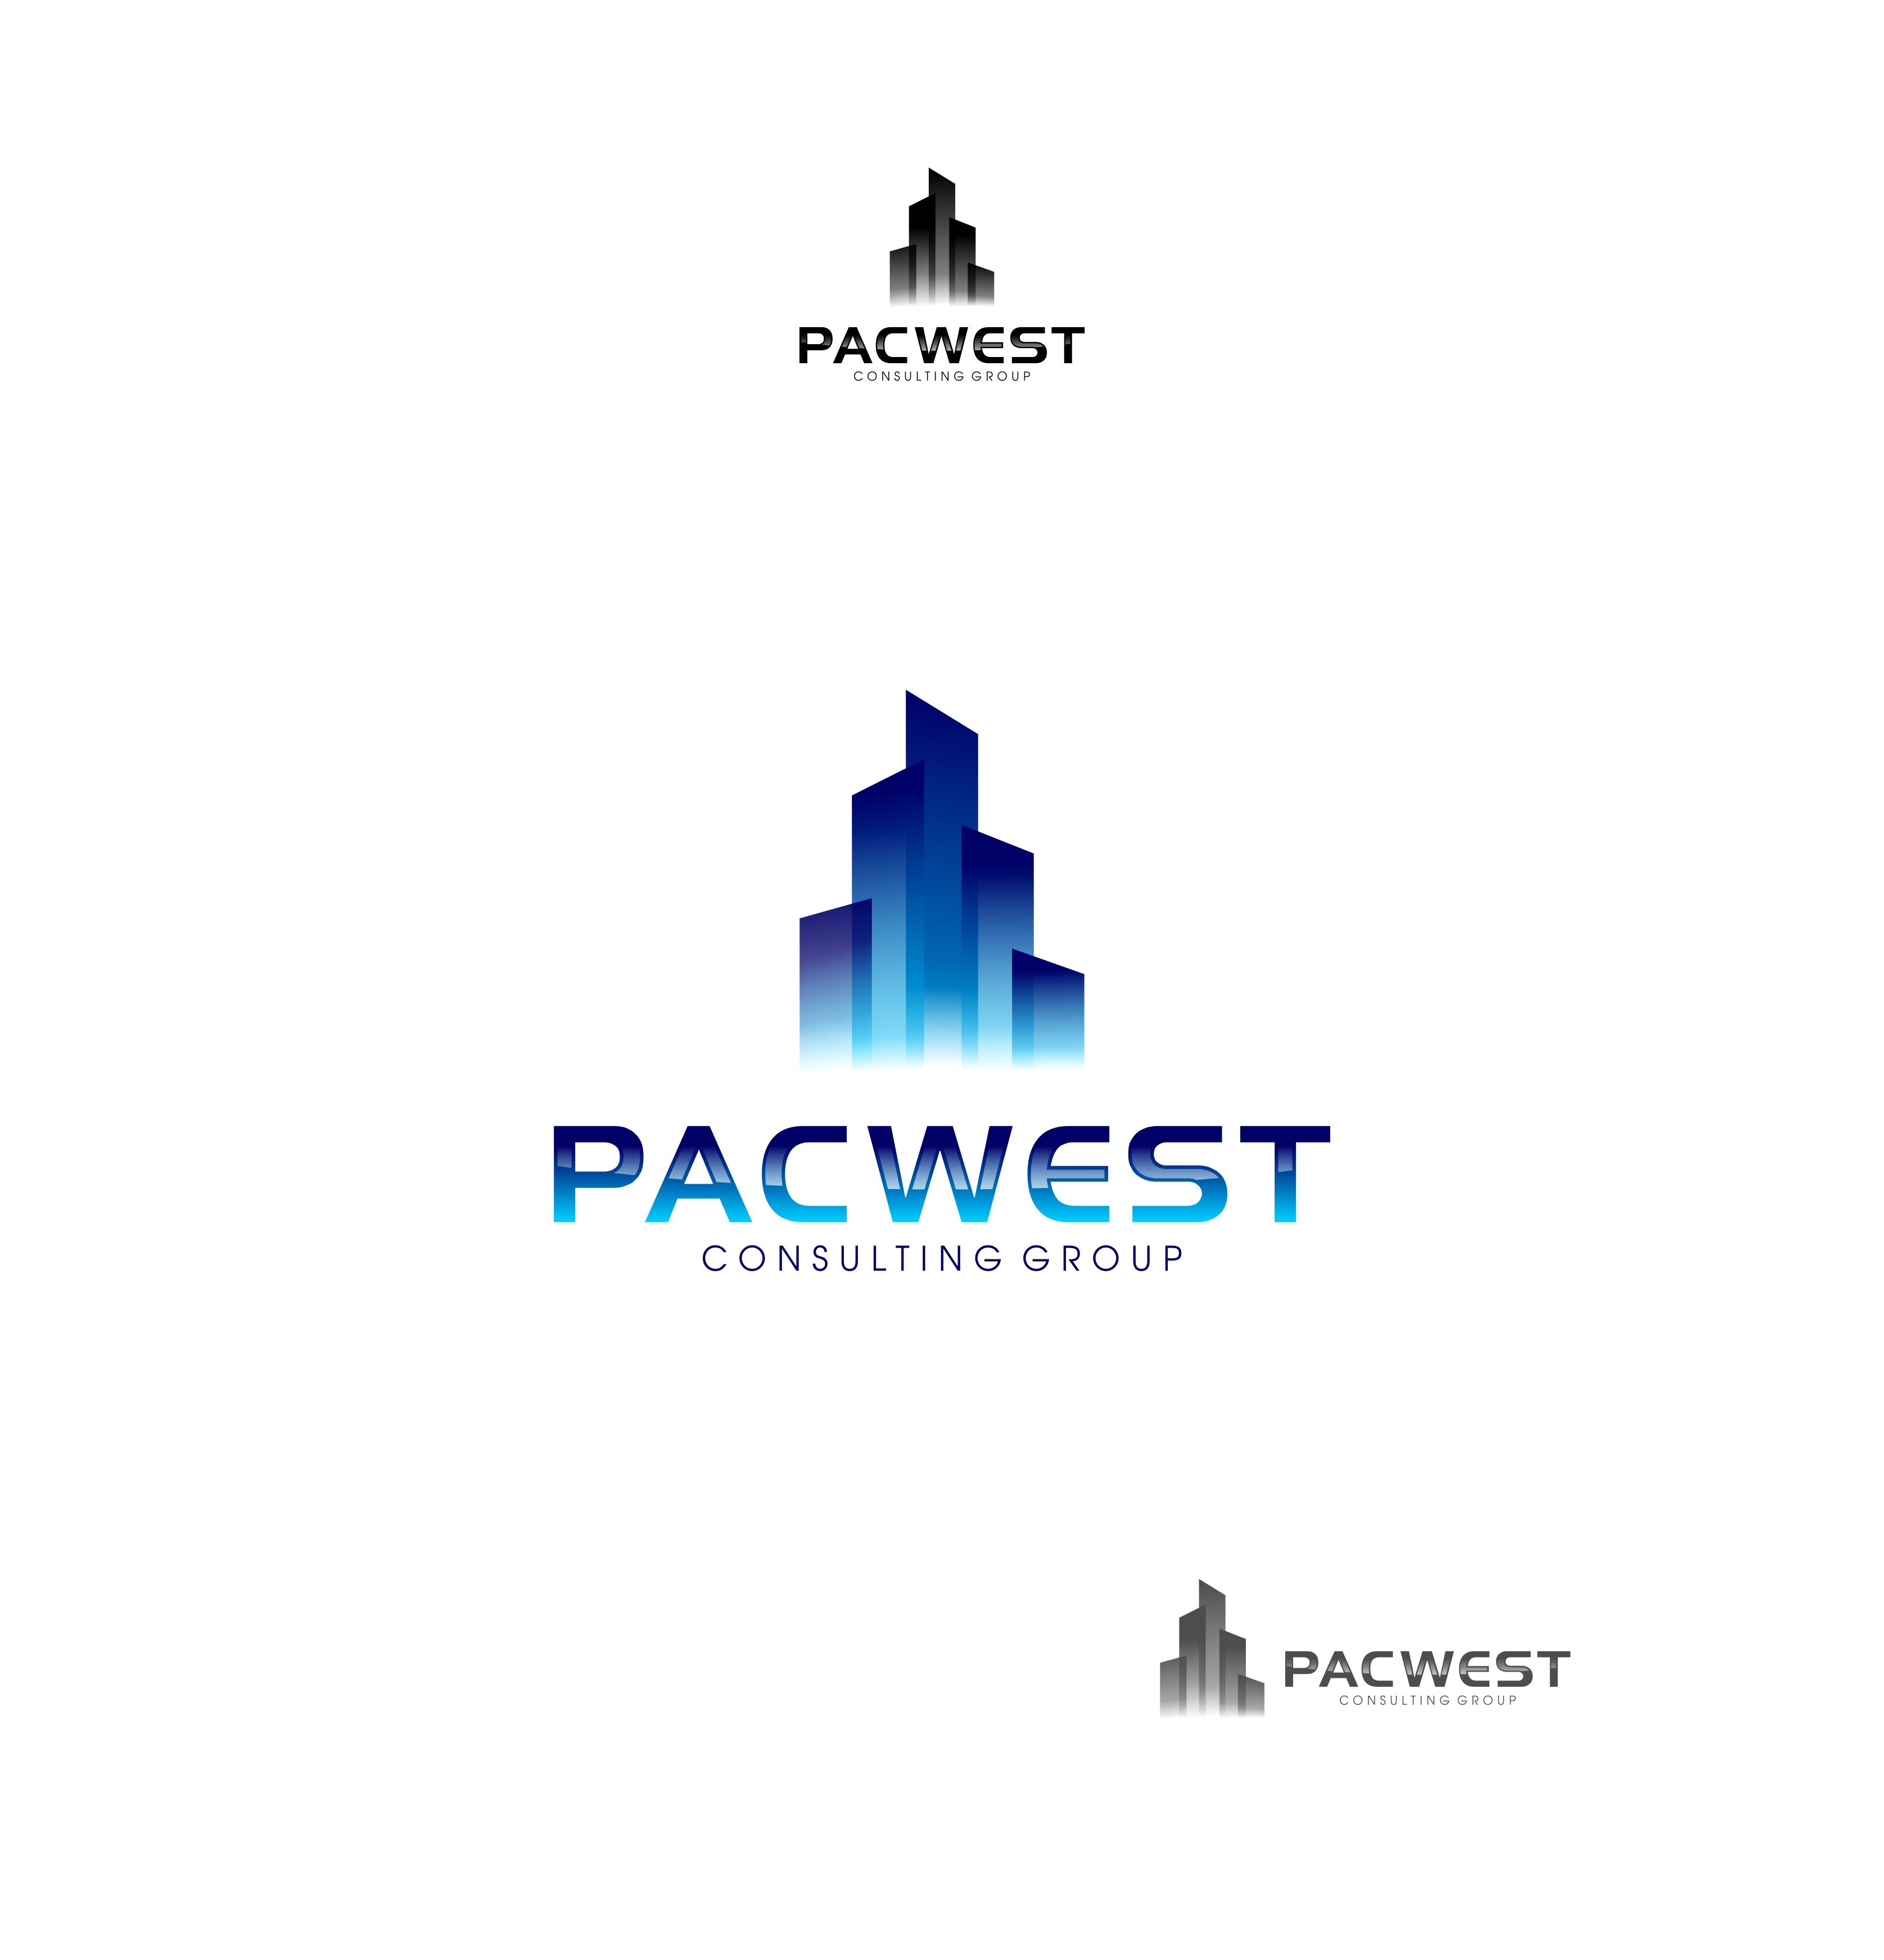 Logo Design by Raymond Garcia - Entry No. 6 in the Logo Design Contest Imaginative Logo Design for Pacwest Consulting Group.